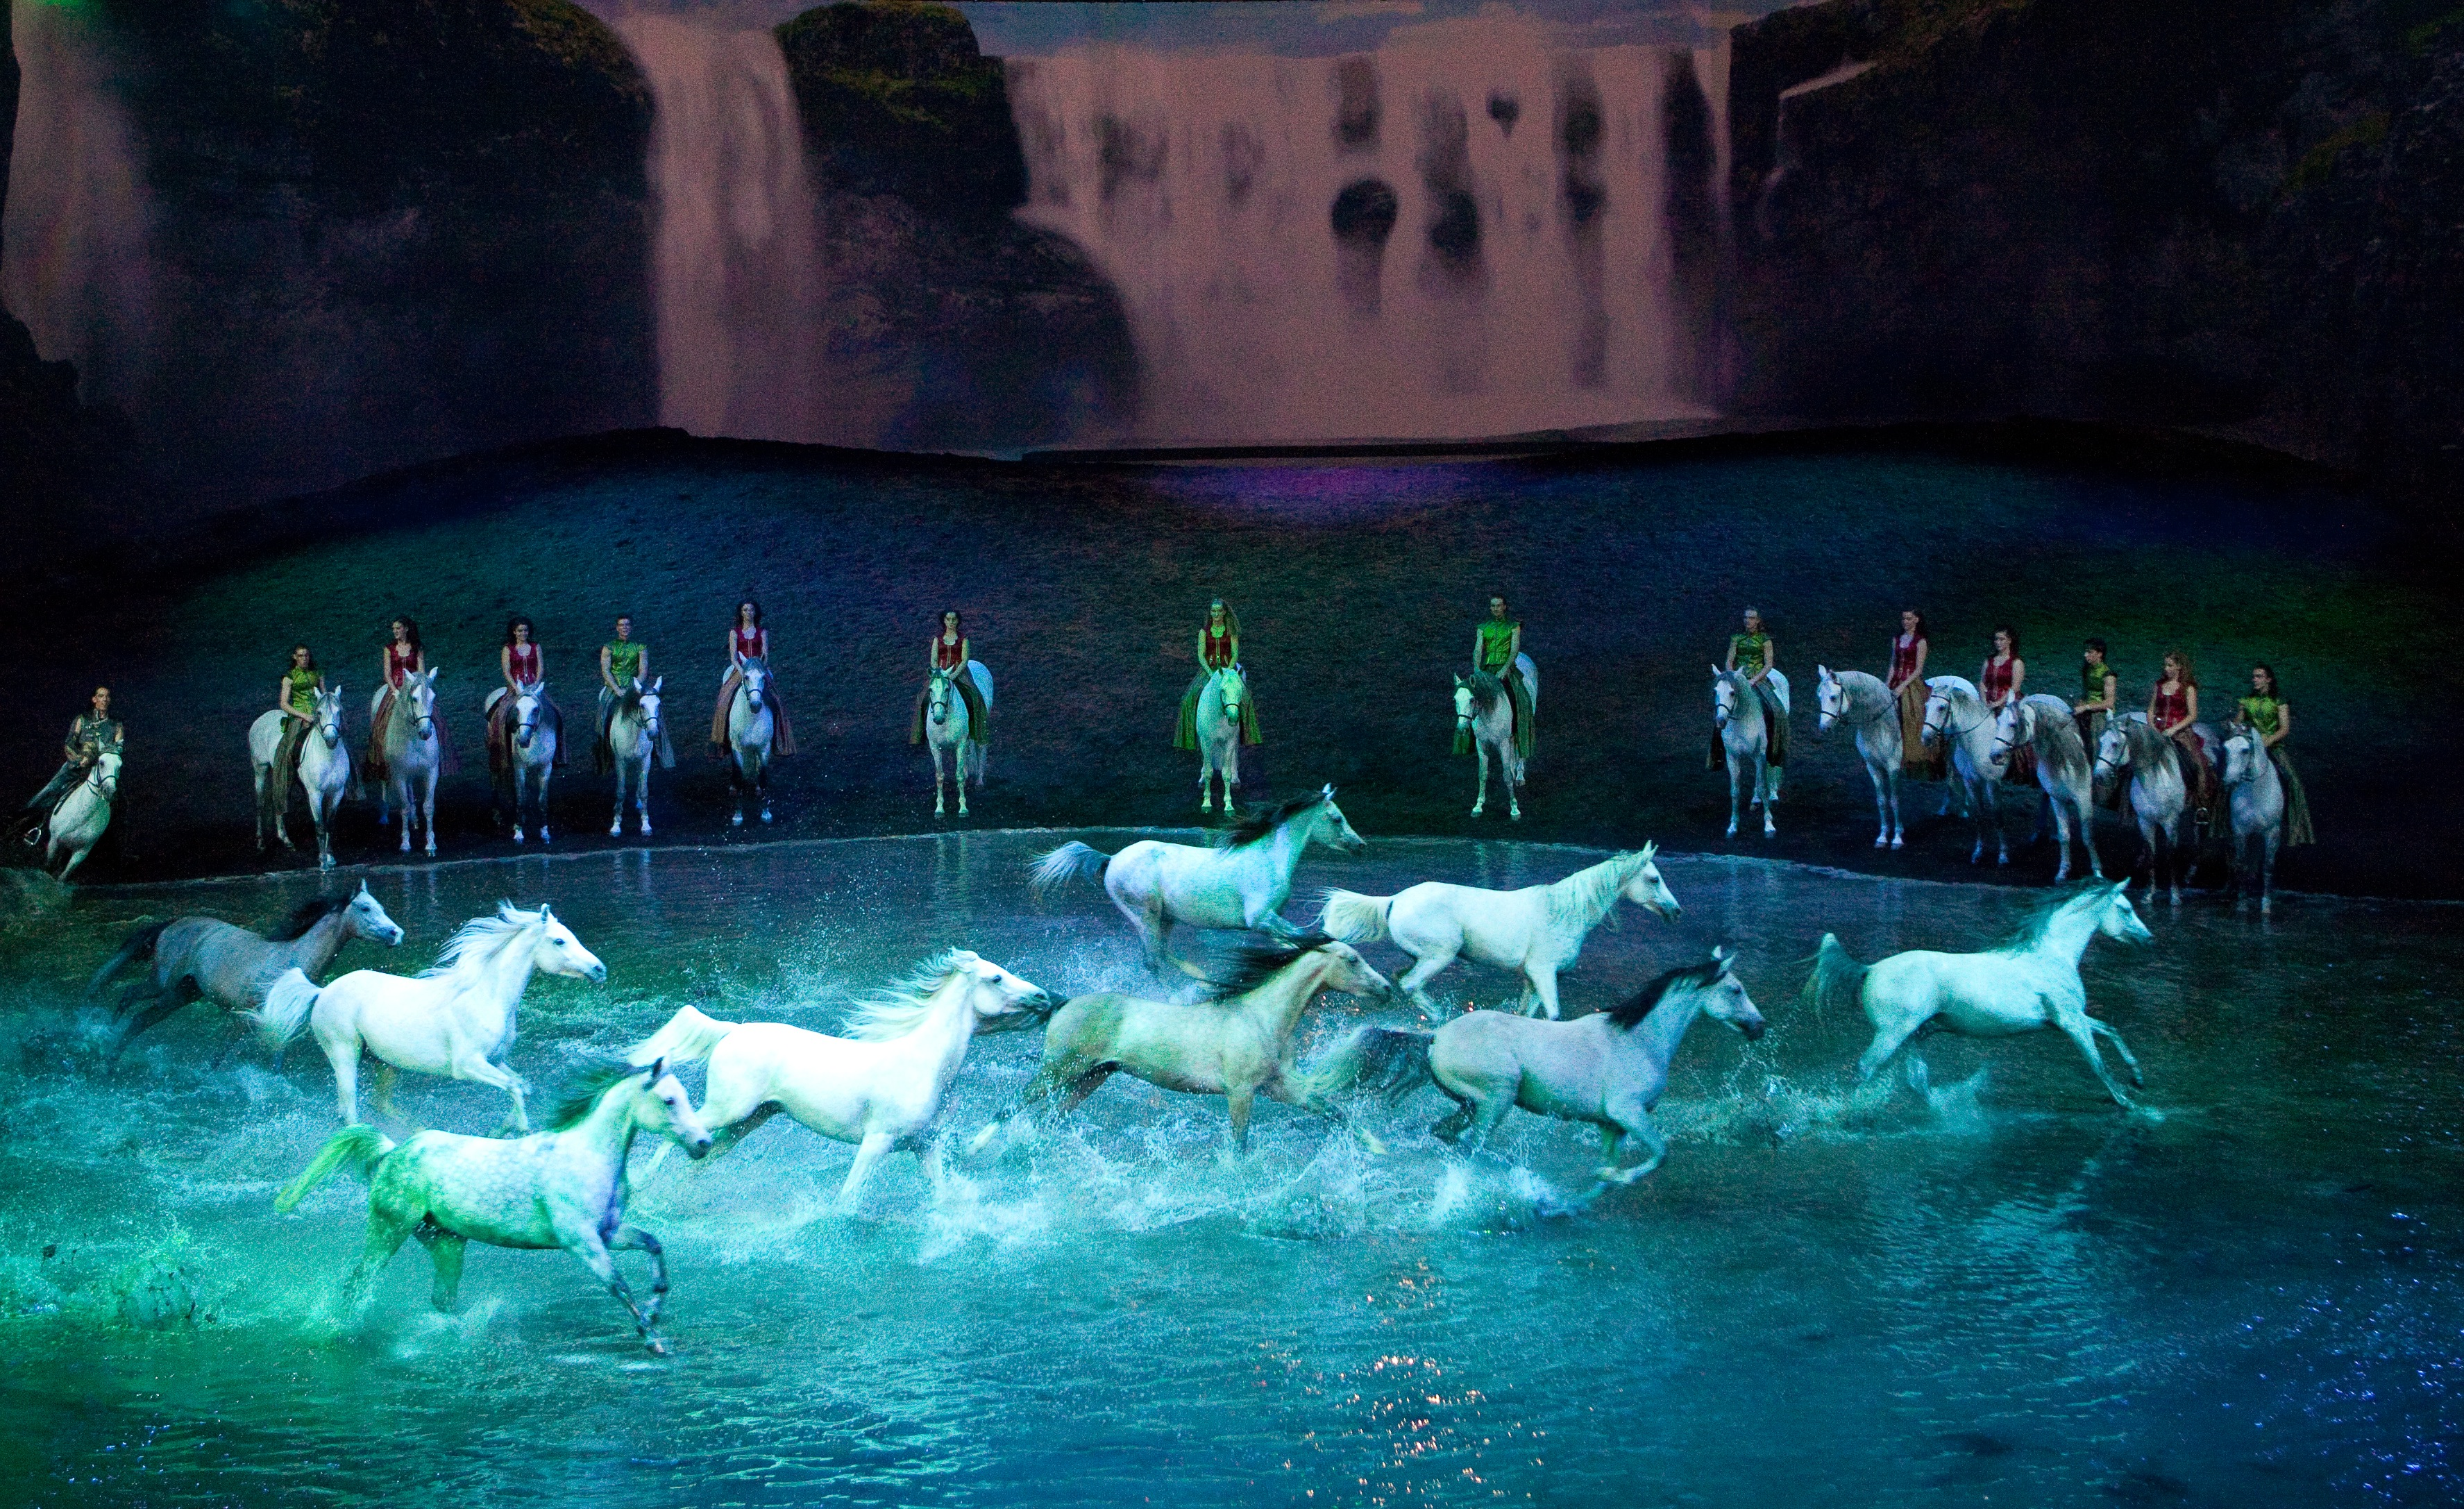 White horses galloping through a pool in Cavalia's Odysseo Show